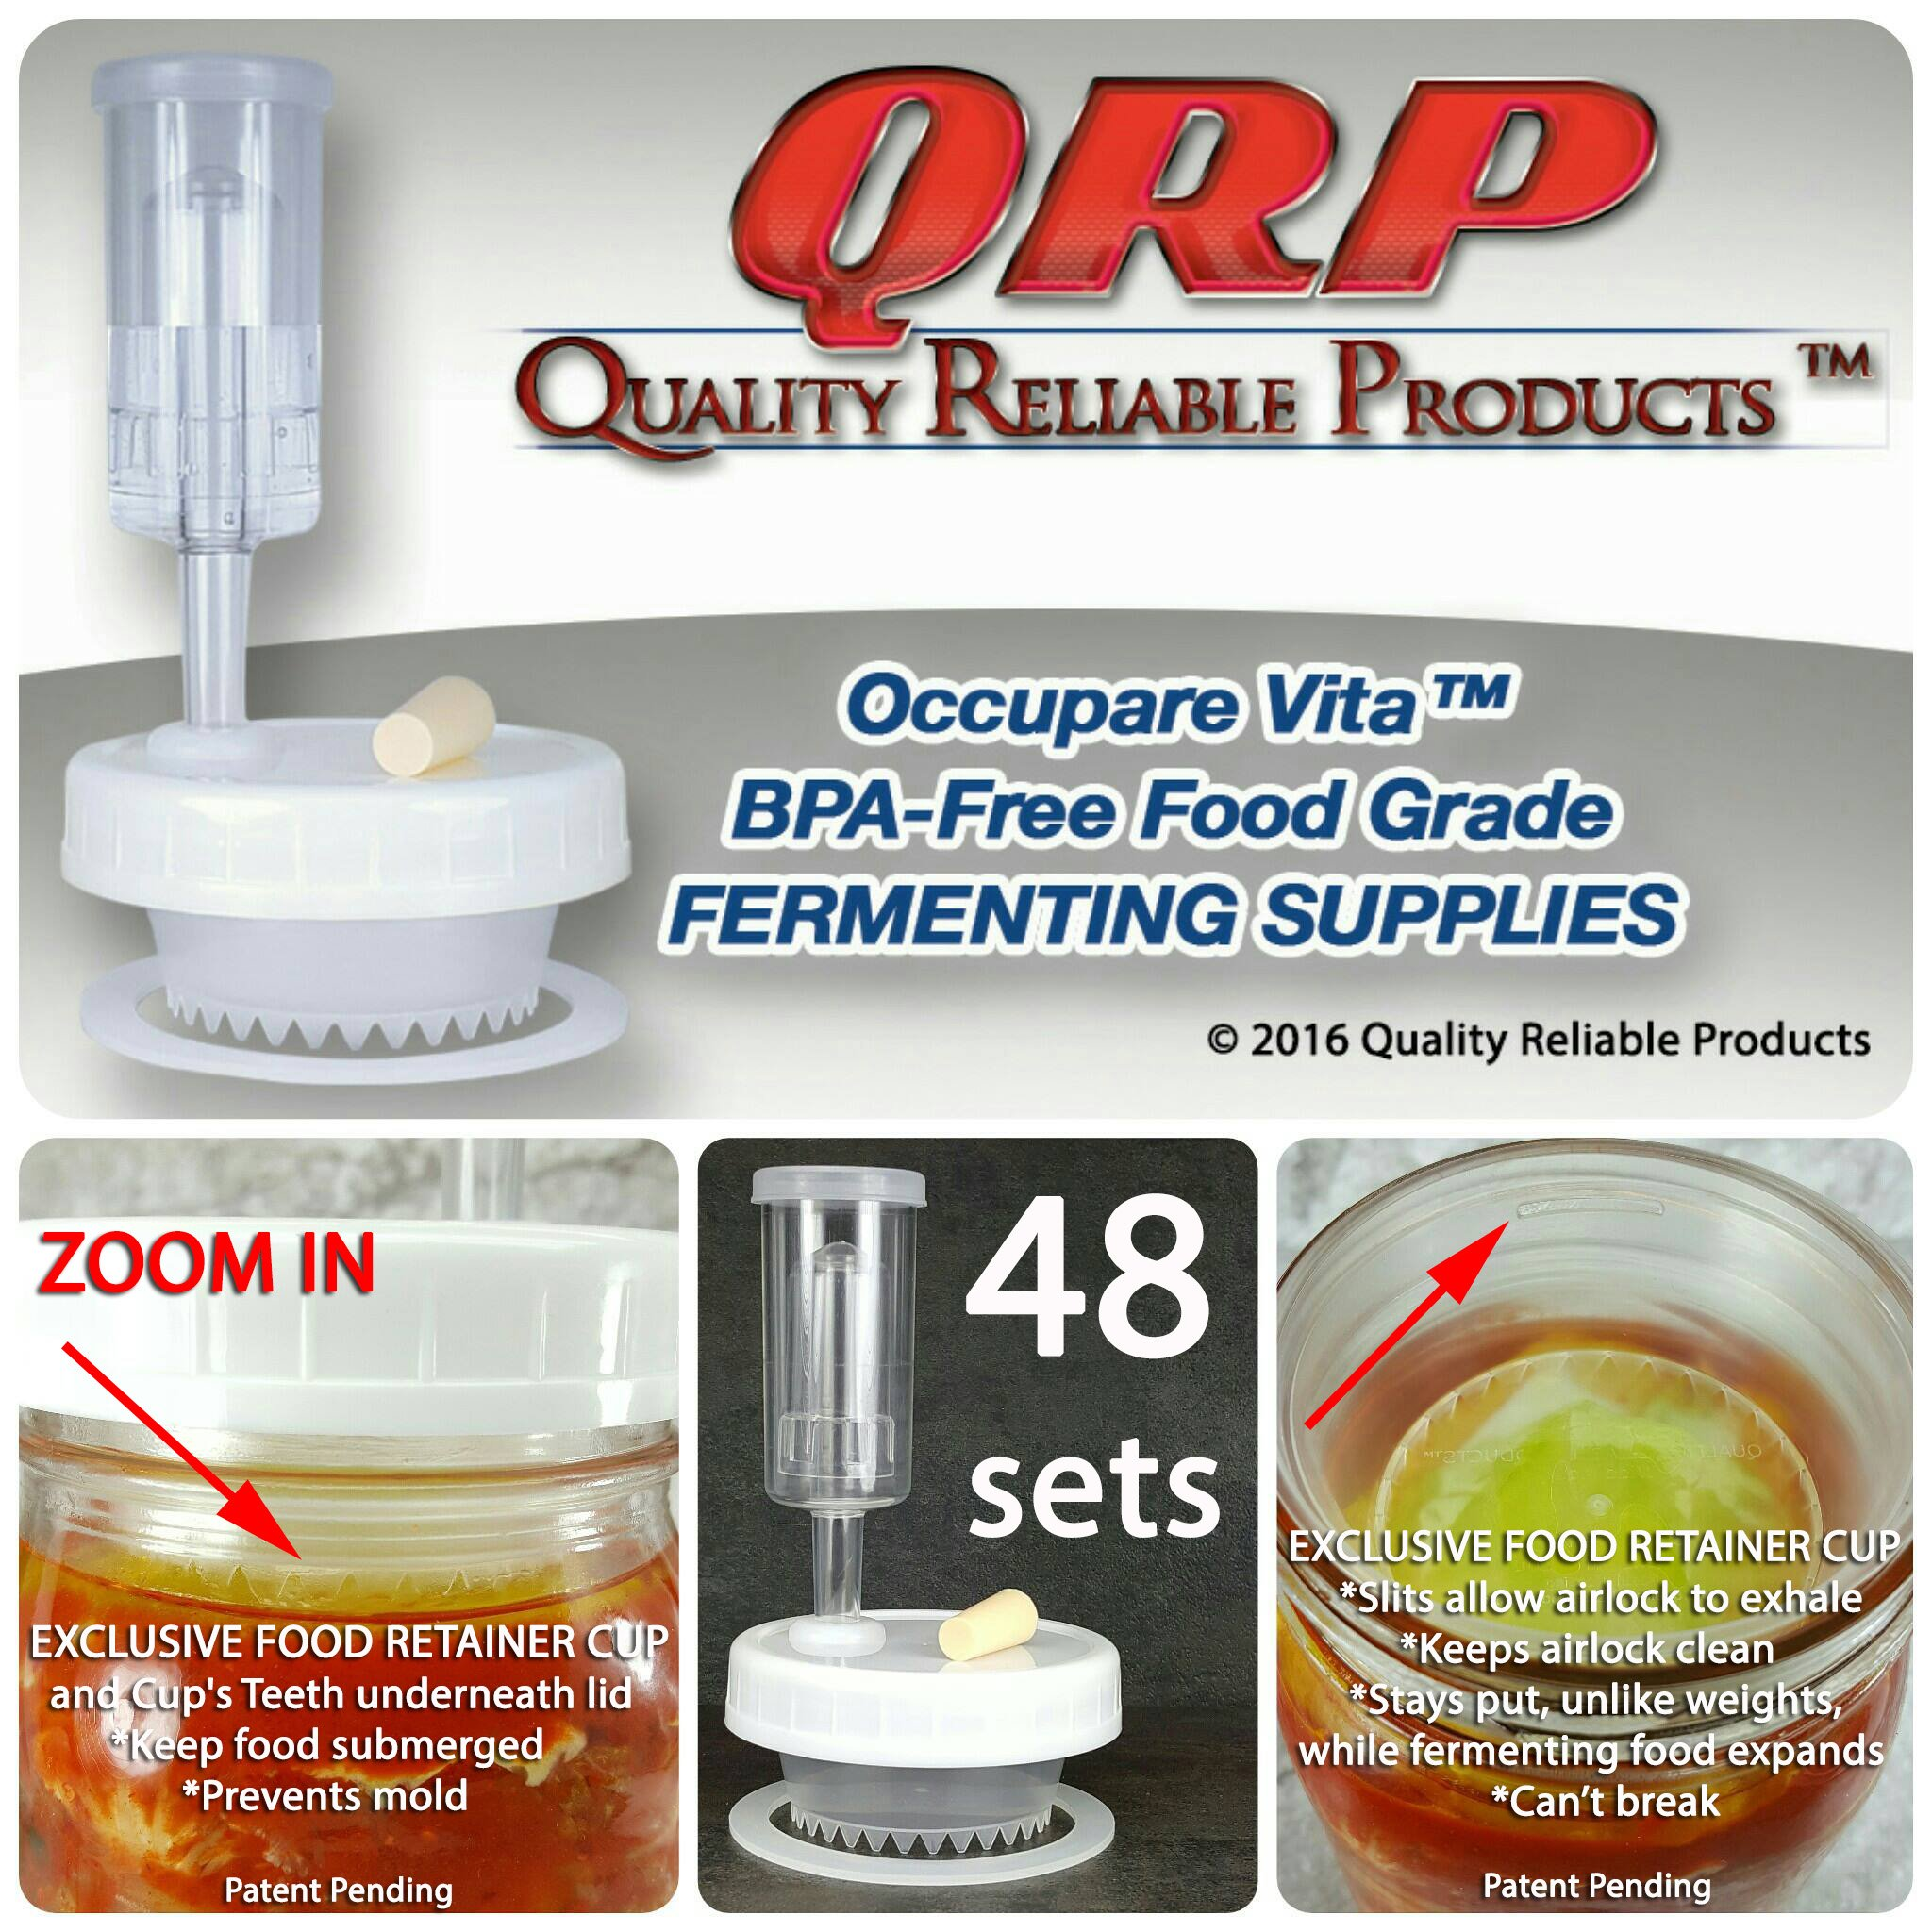 48 QRP No Messy Overflow No Weights Needed Mason Jar Fermentation Kits with Exclusive Food Retainer Cups keep food submerged in brine (CLUB PACK 48 WIDE MOUTH KITS) by Quality Reliable Products